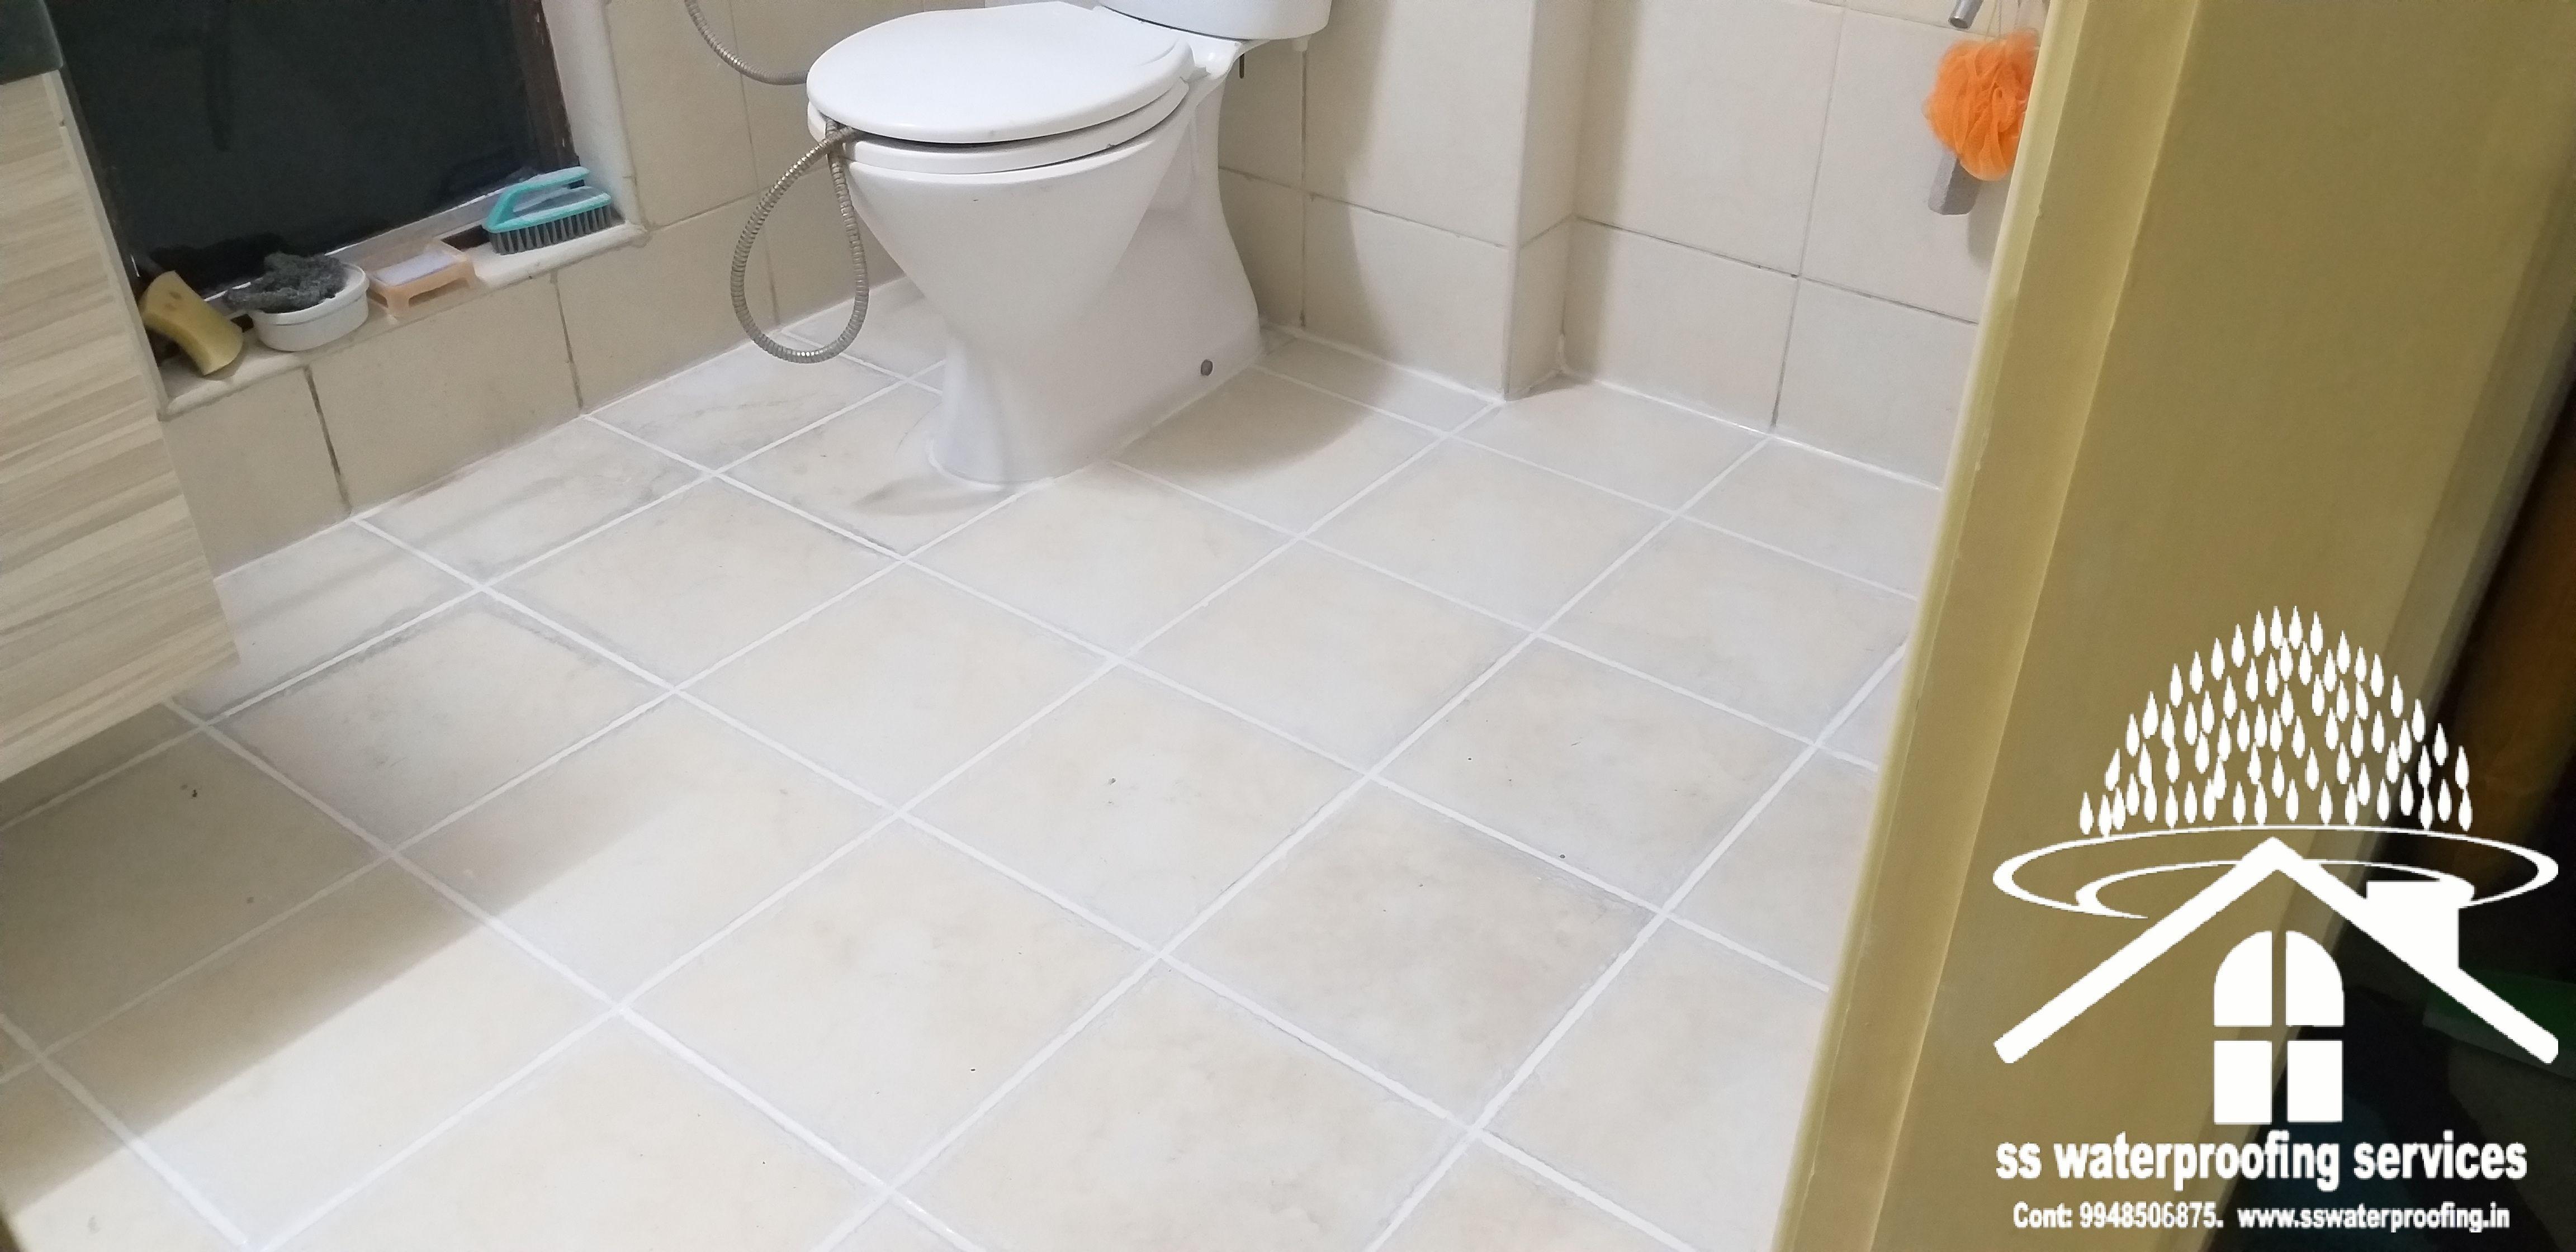 Awesome Waterproofing For Bathrooms In Hyderbad Bathrooms Pdpeps Interior Chair Design Pdpepsorg